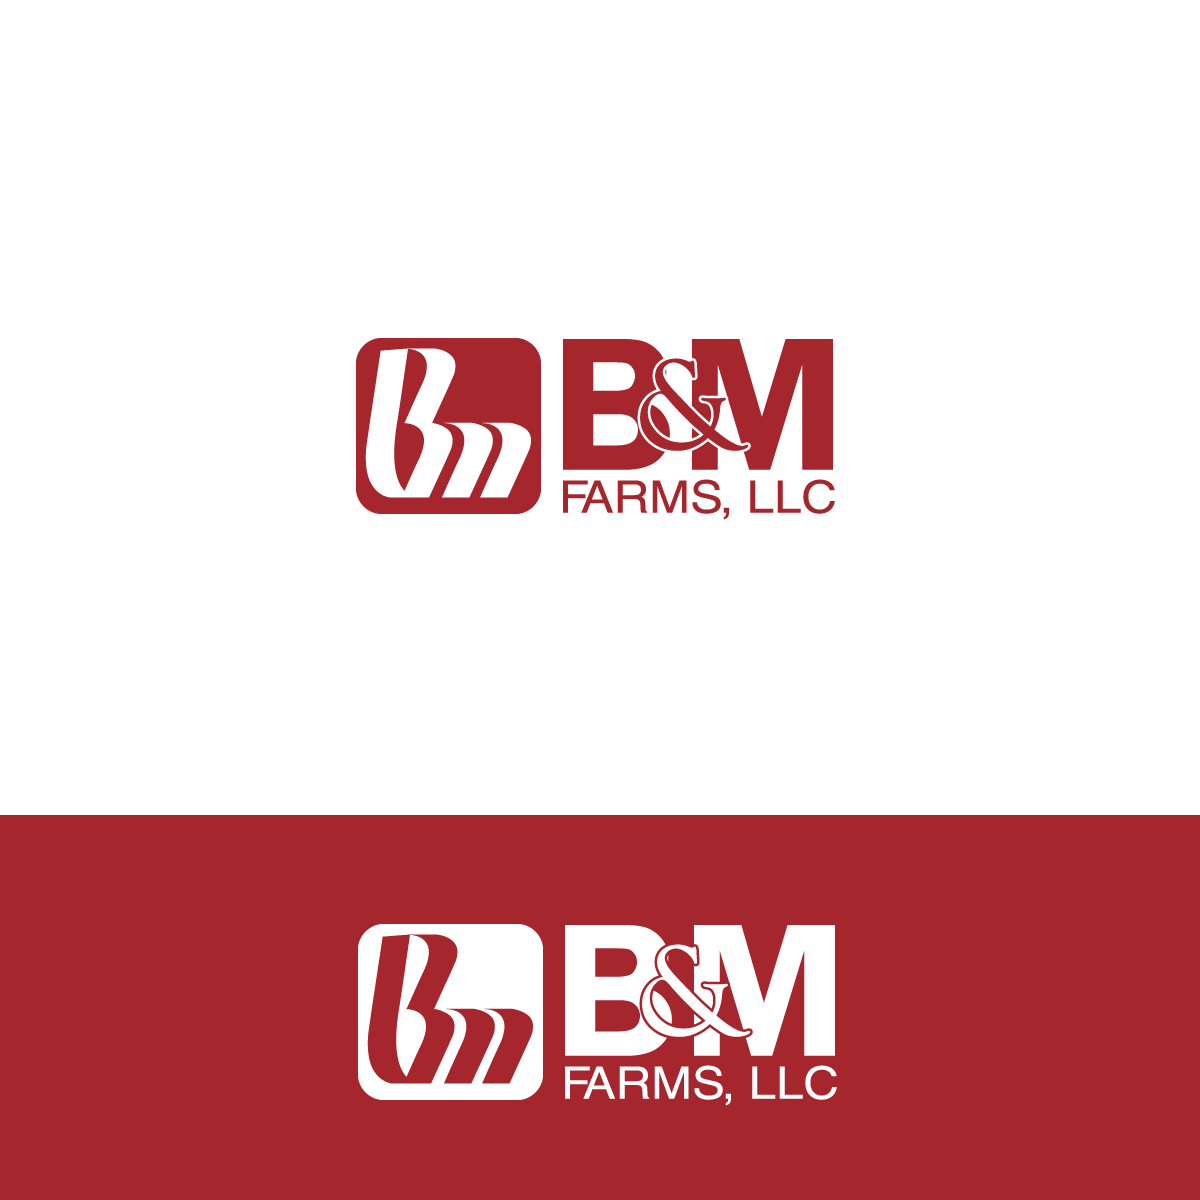 Logo Design by rockin - Entry No. 2 in the Logo Design Contest Creative Logo Design for B & M Farms, LLC.